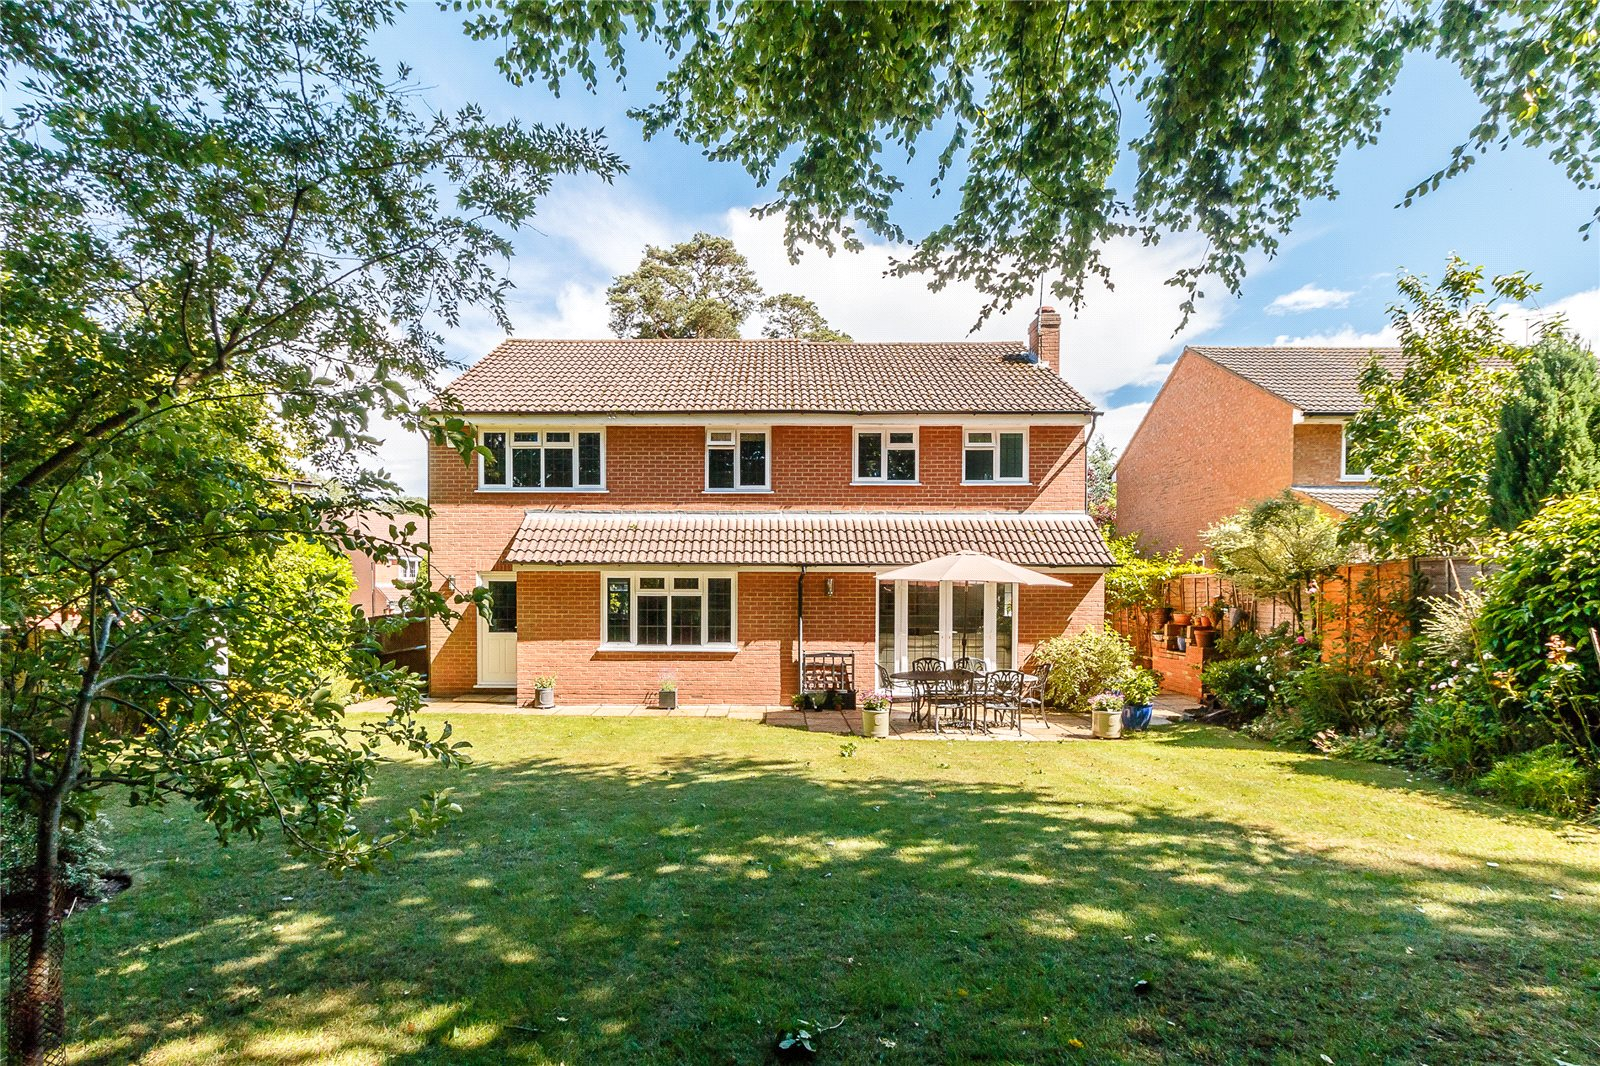 Single Family Home for Sale at Colville Gardens, Lightwater, Surrey, GU18 Lightwater, England